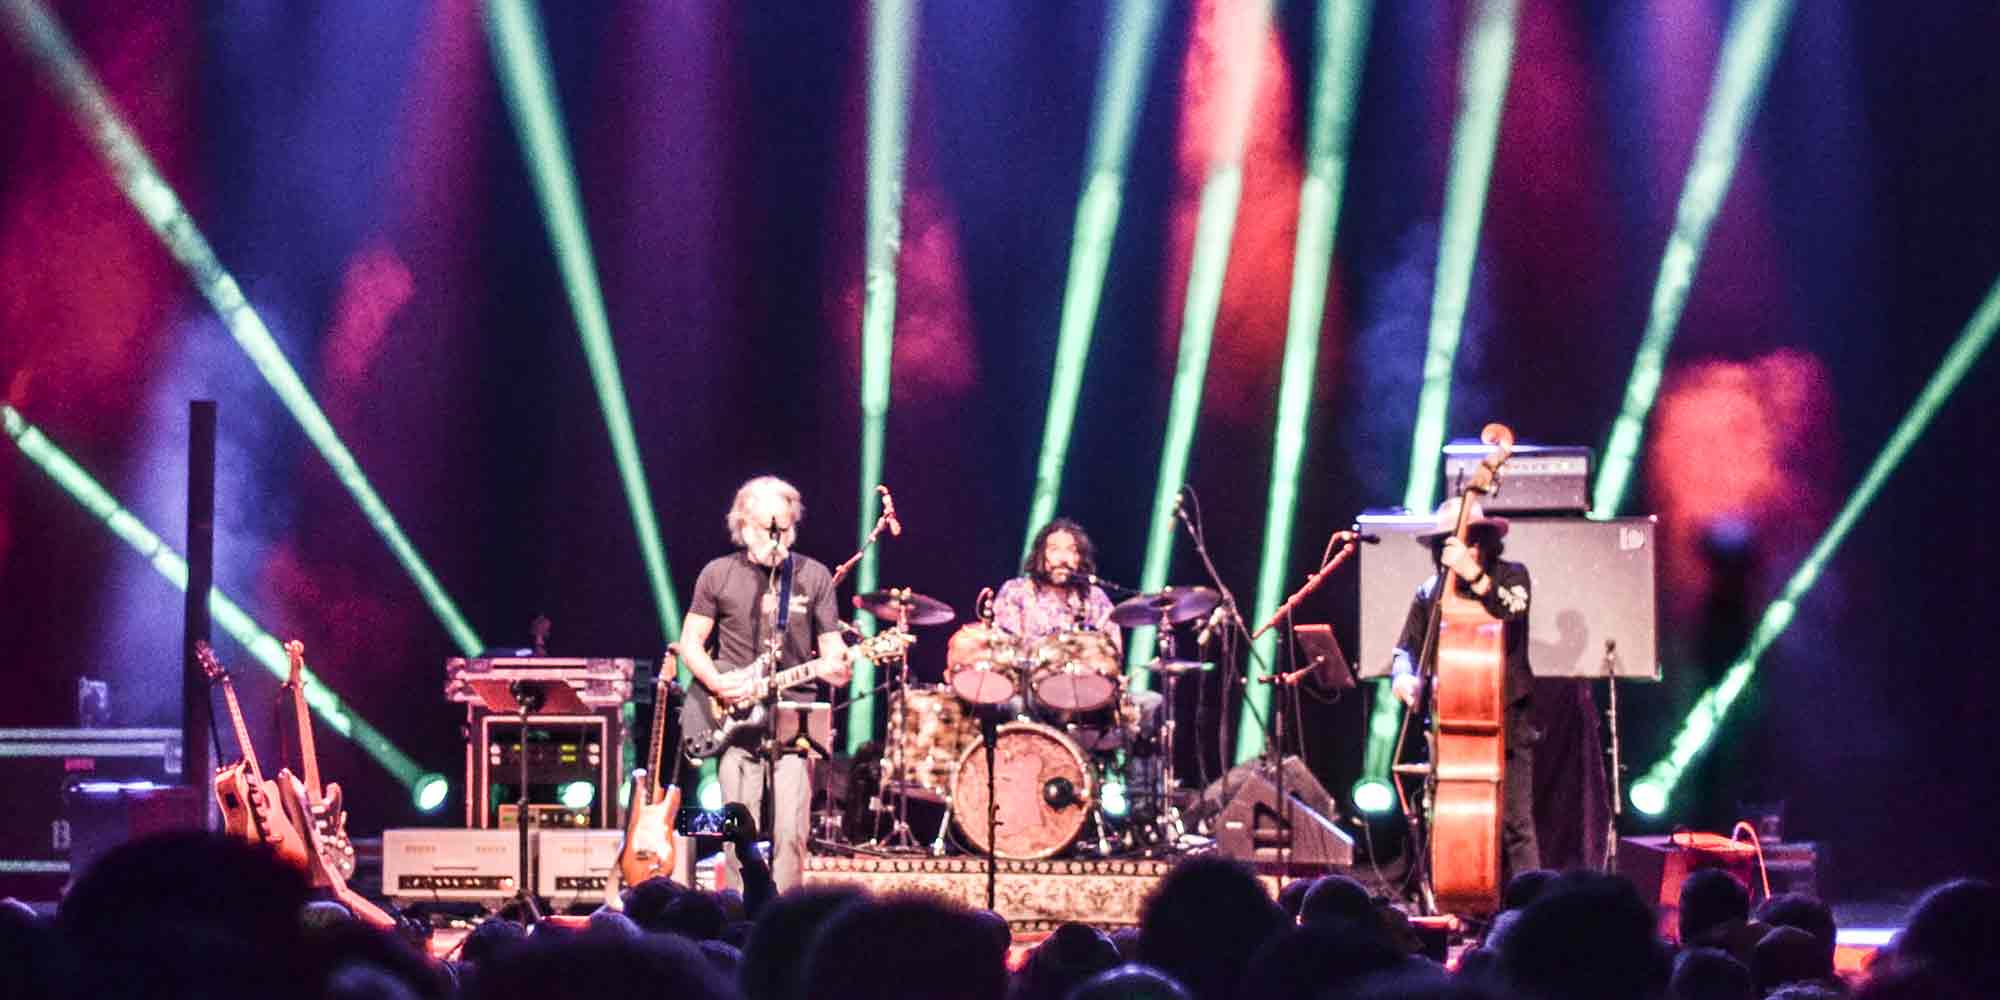 Bob Weir and the Wolf Brothers at Palace Theater